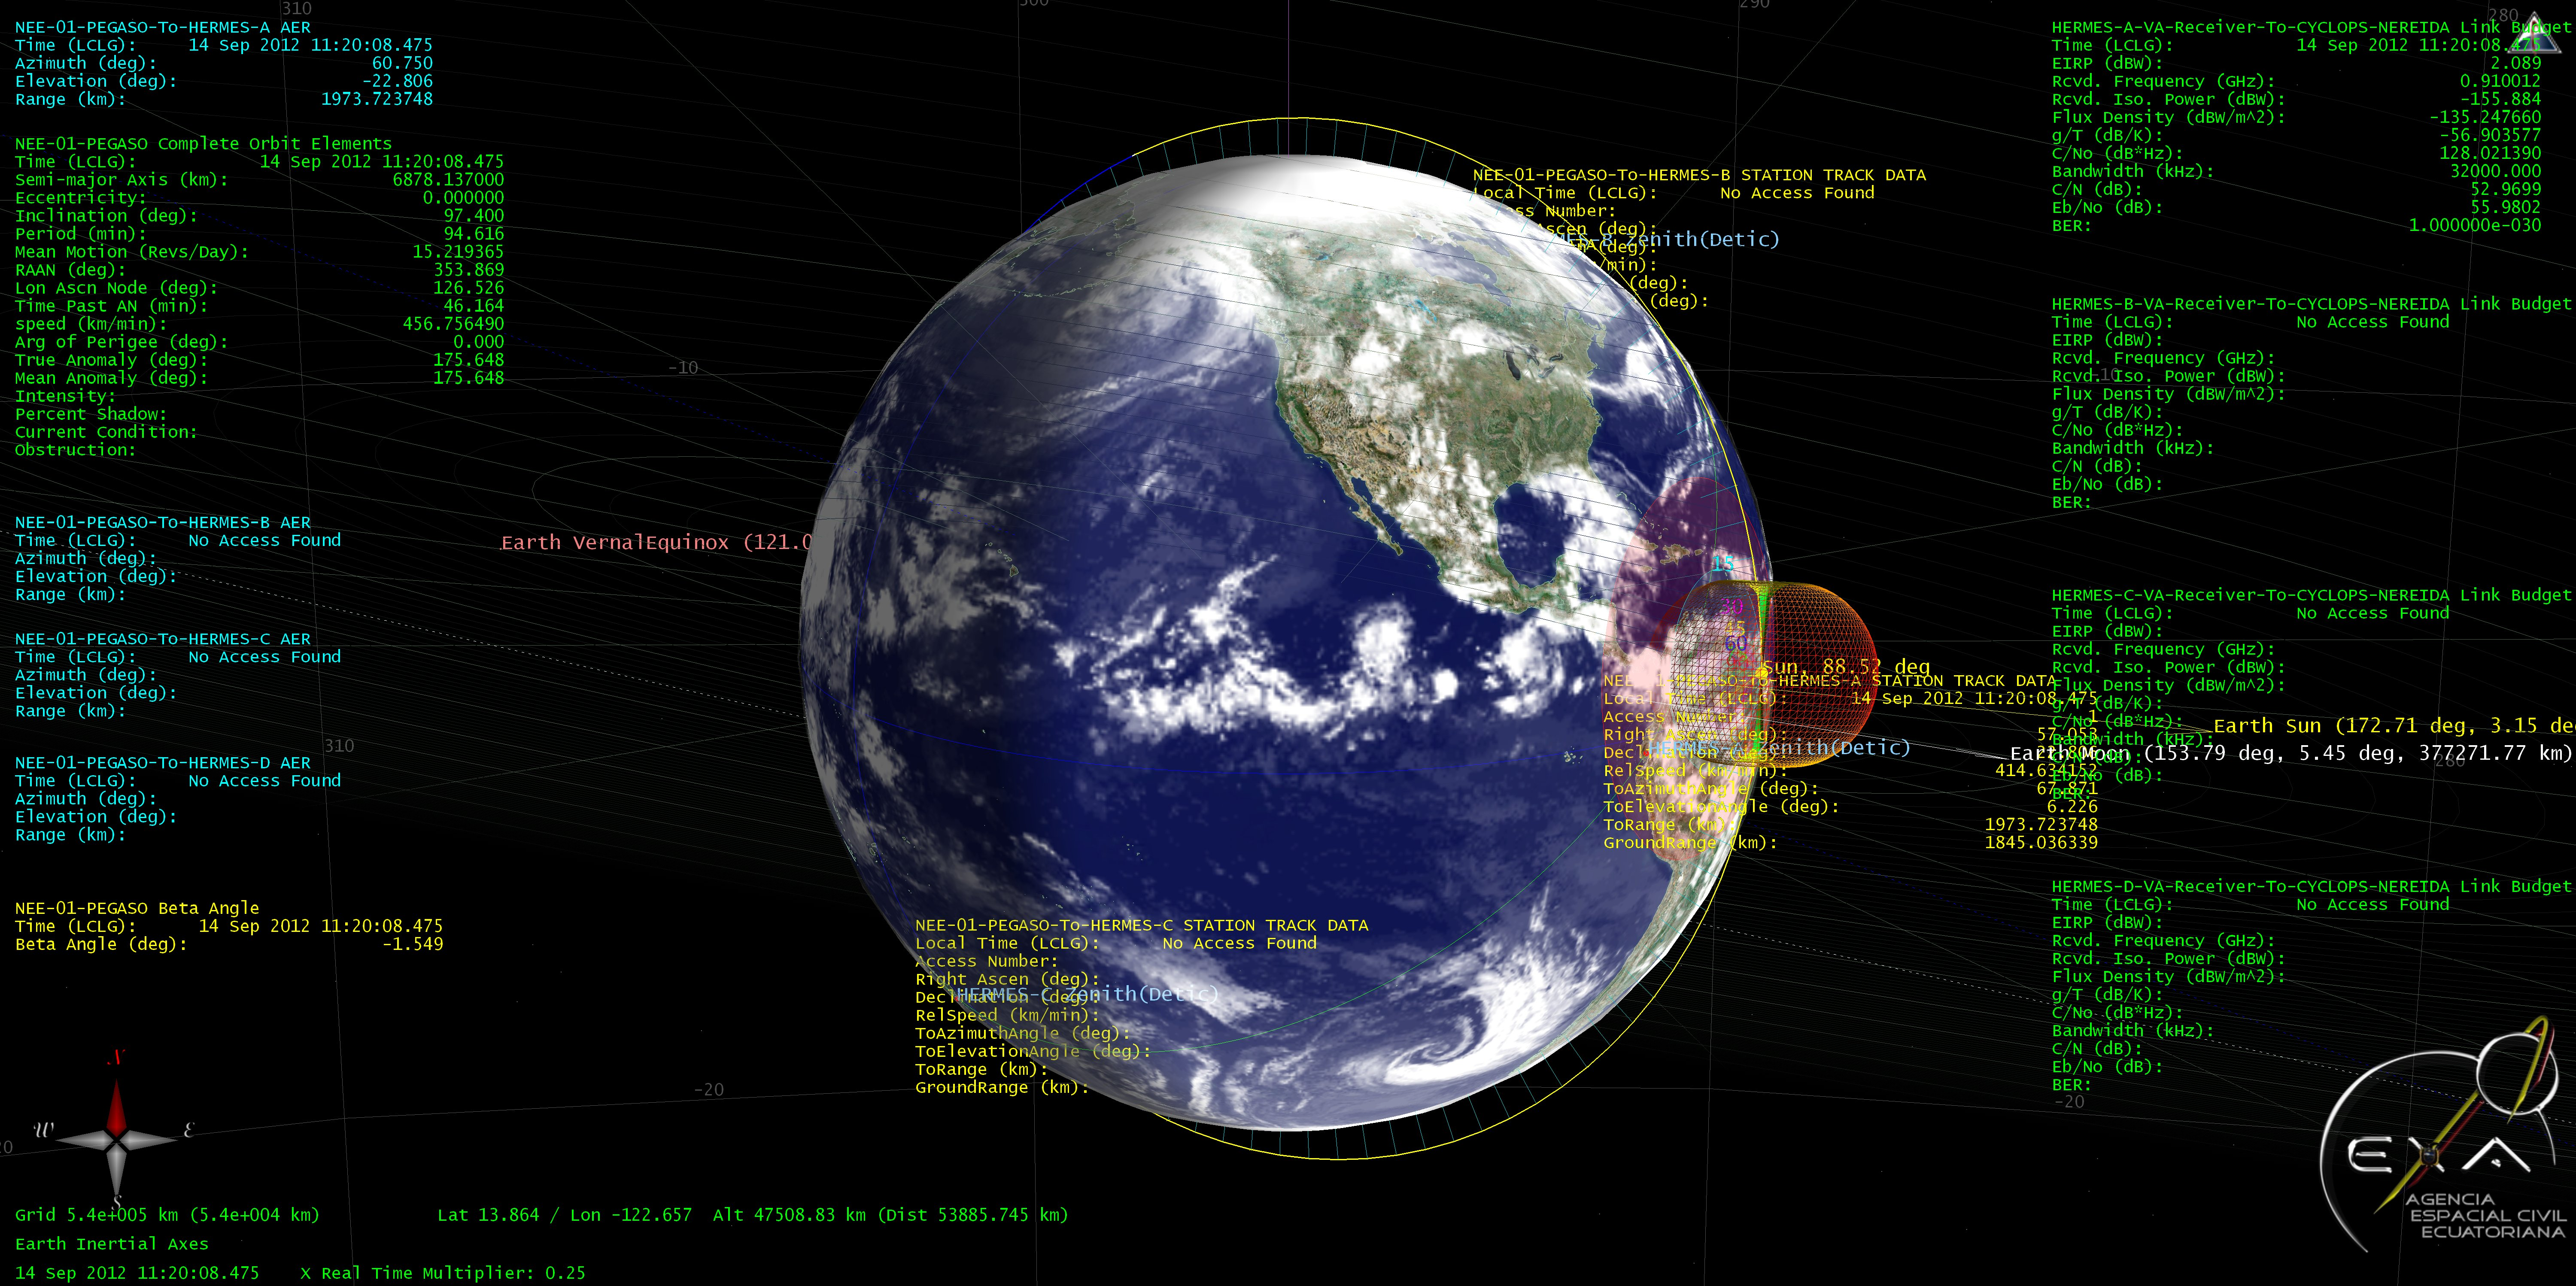 FIRST ECUADORIAN SATELLITE WILL HELP MONITORING NEAR-EARTH OBJECTS